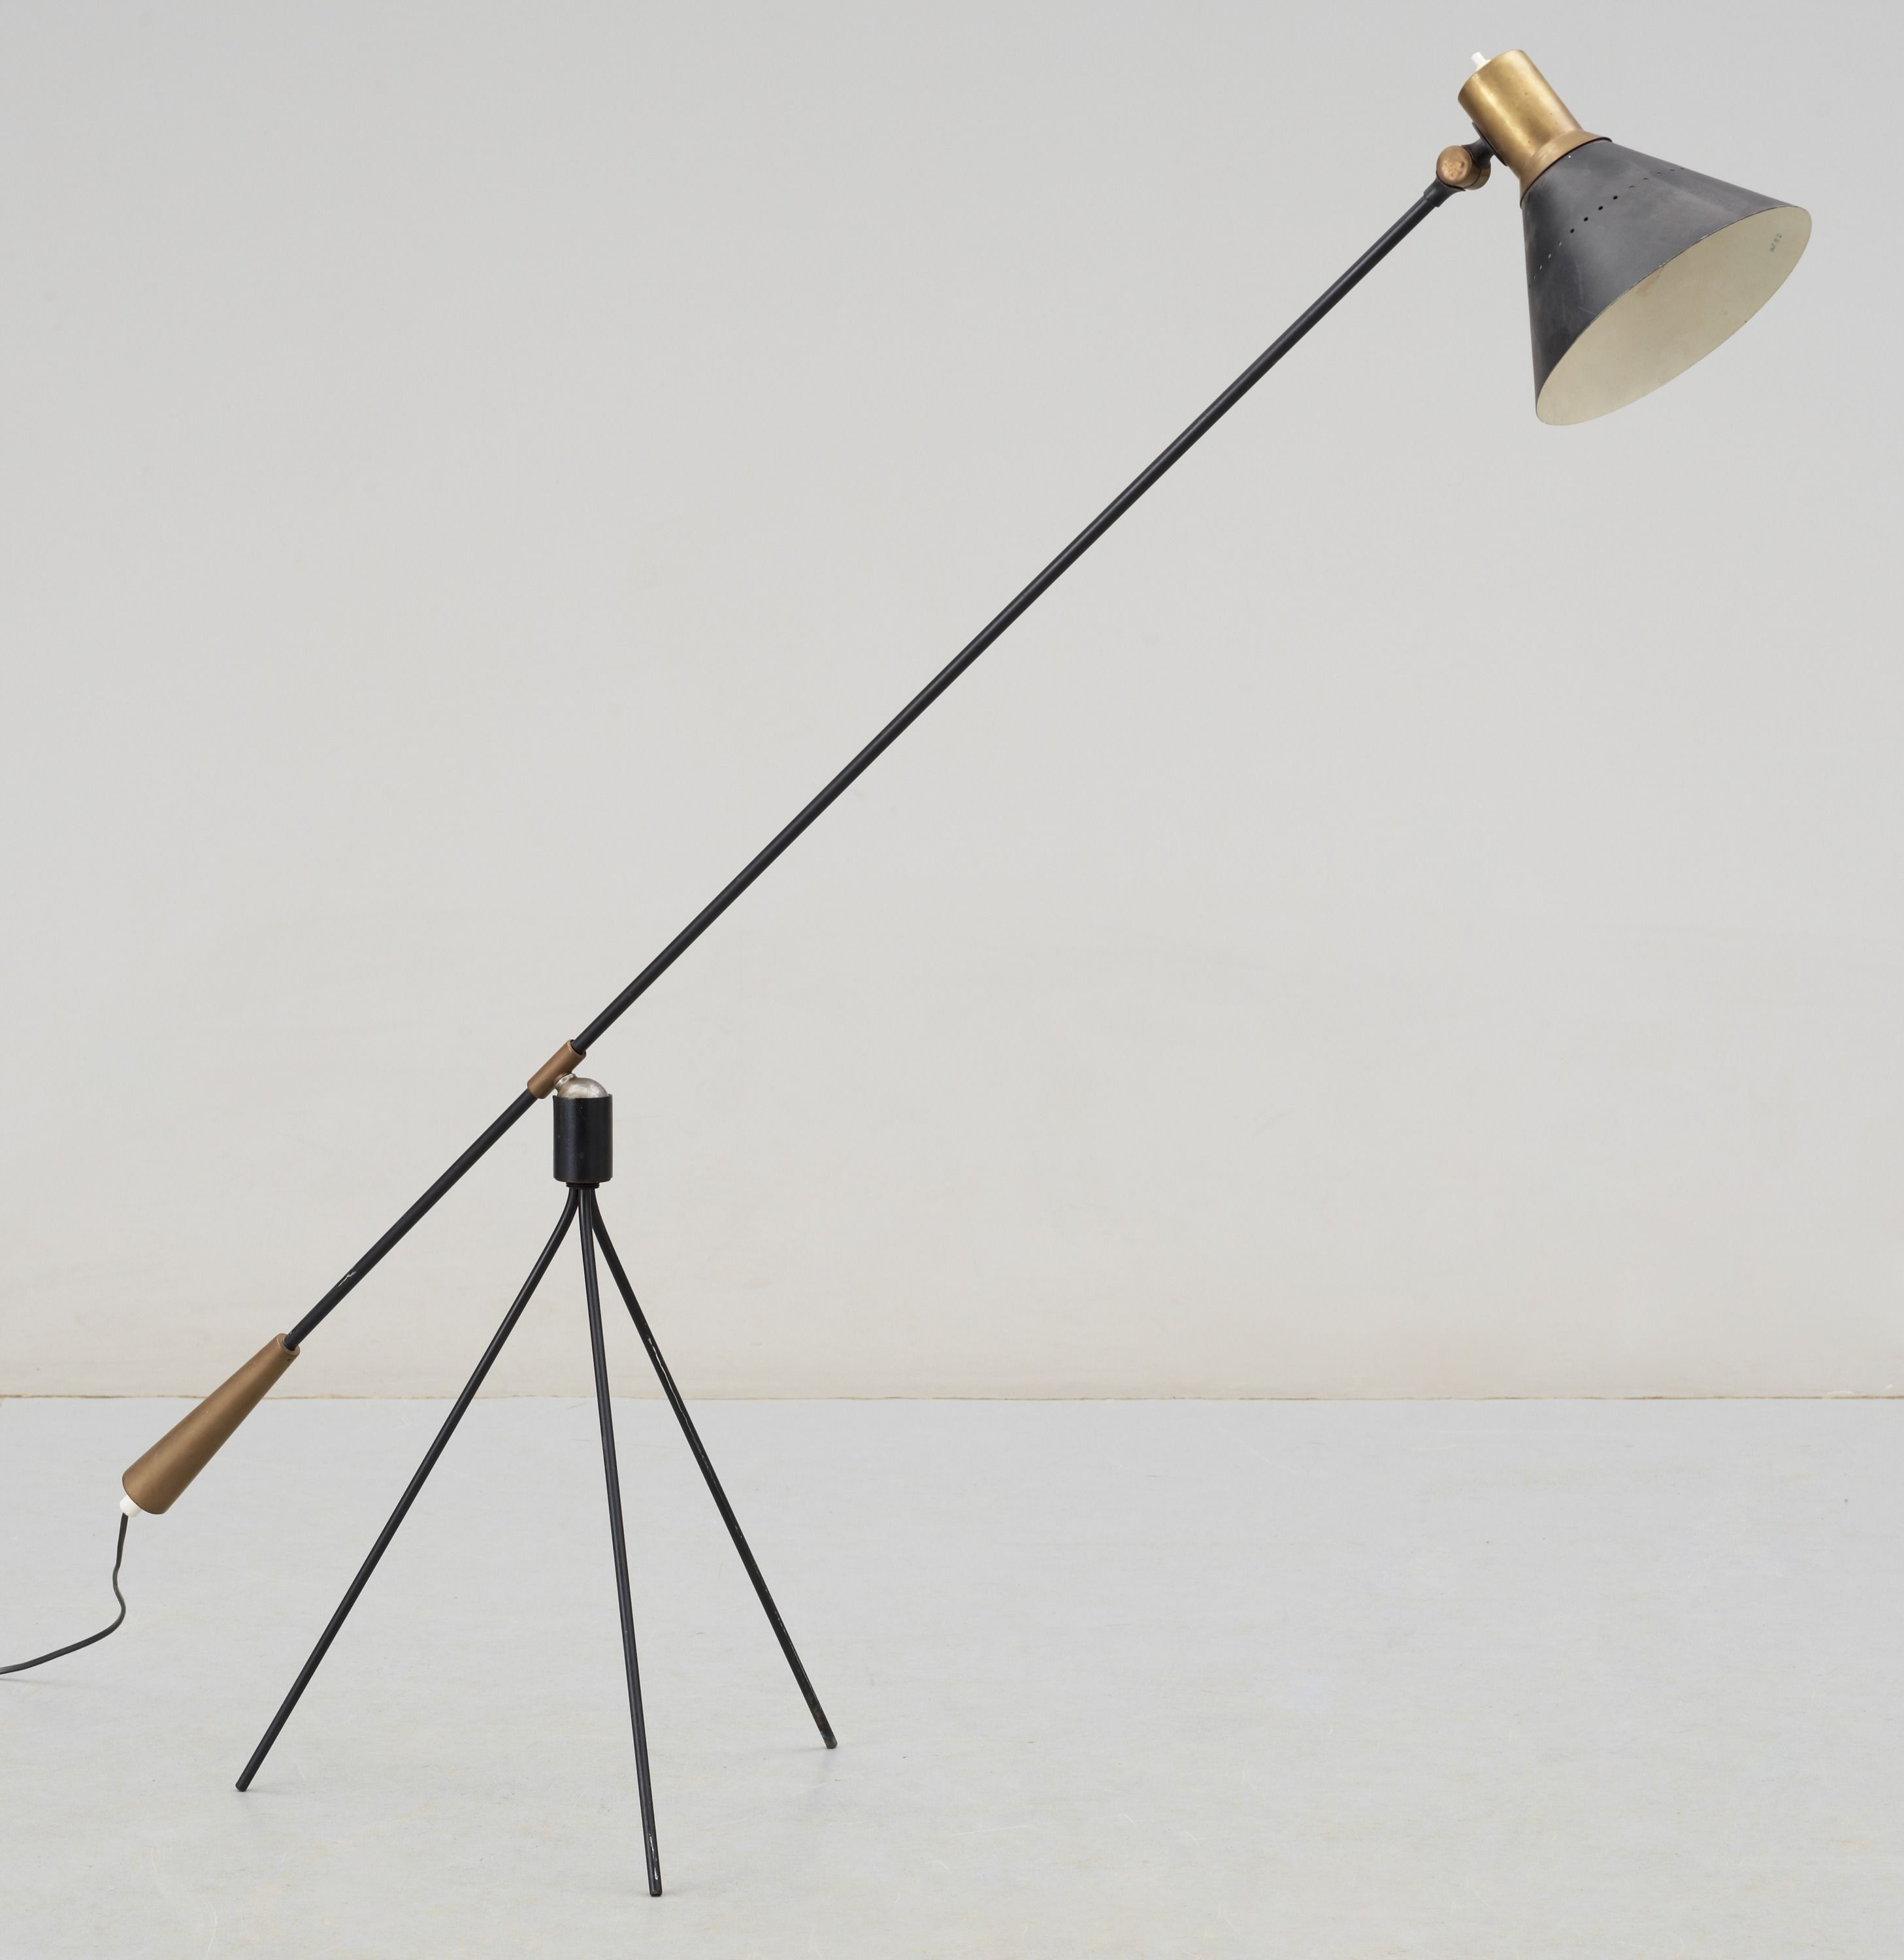 Gilbert watrous brass and enameled steel floor lamp for bergboms gilbert watrous brass and enameled steel floor lamp for bergboms 1950s aloadofball Images